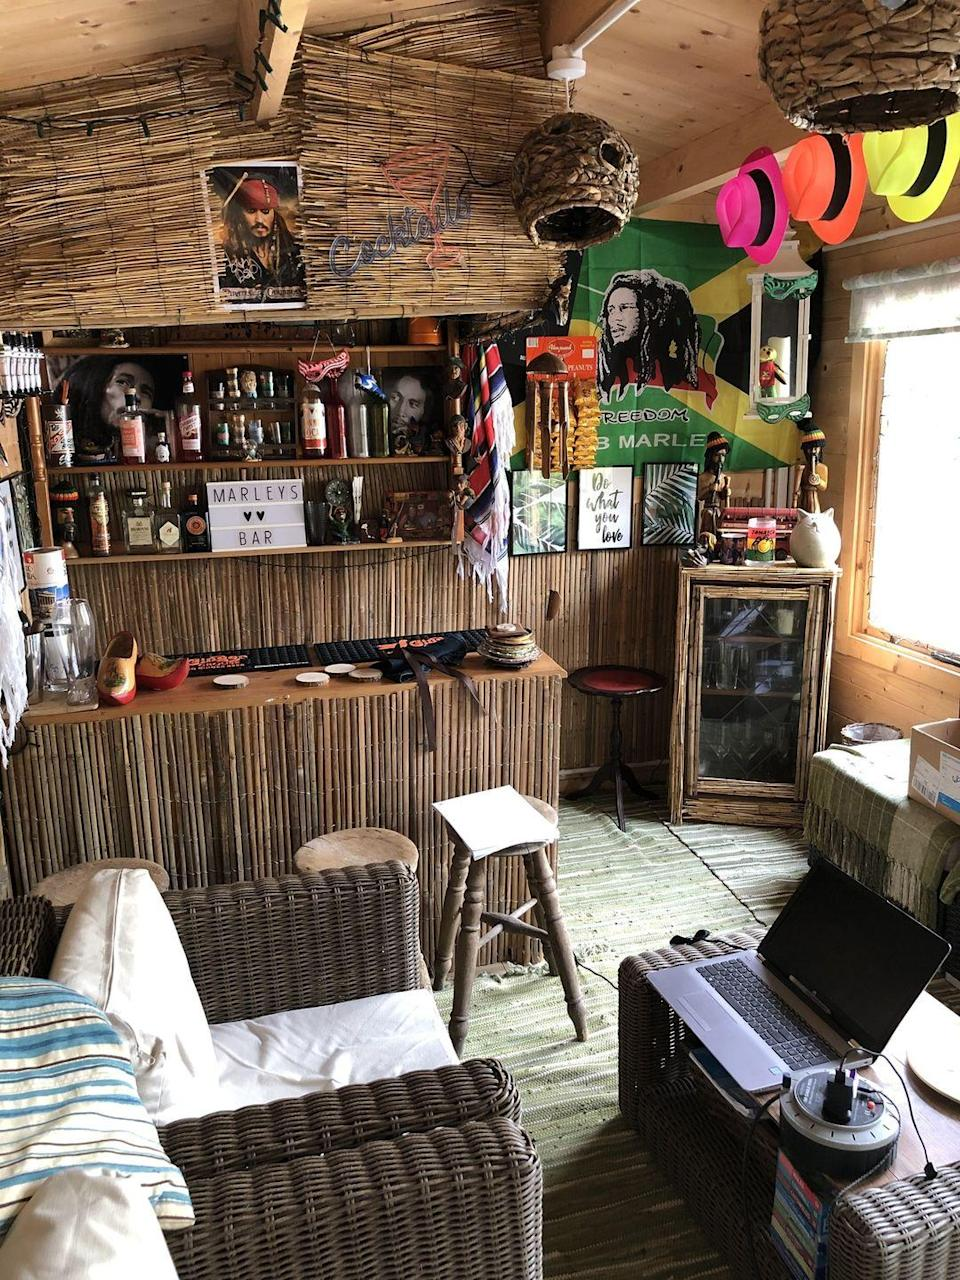 <p>Now known as 'Marley's bar', it has wicker sofas, bar stools, a drinks cabinet and posters of Bob Marley, of course. We imagine Charlotte will be hosting some get-togethers here very soon...</p>